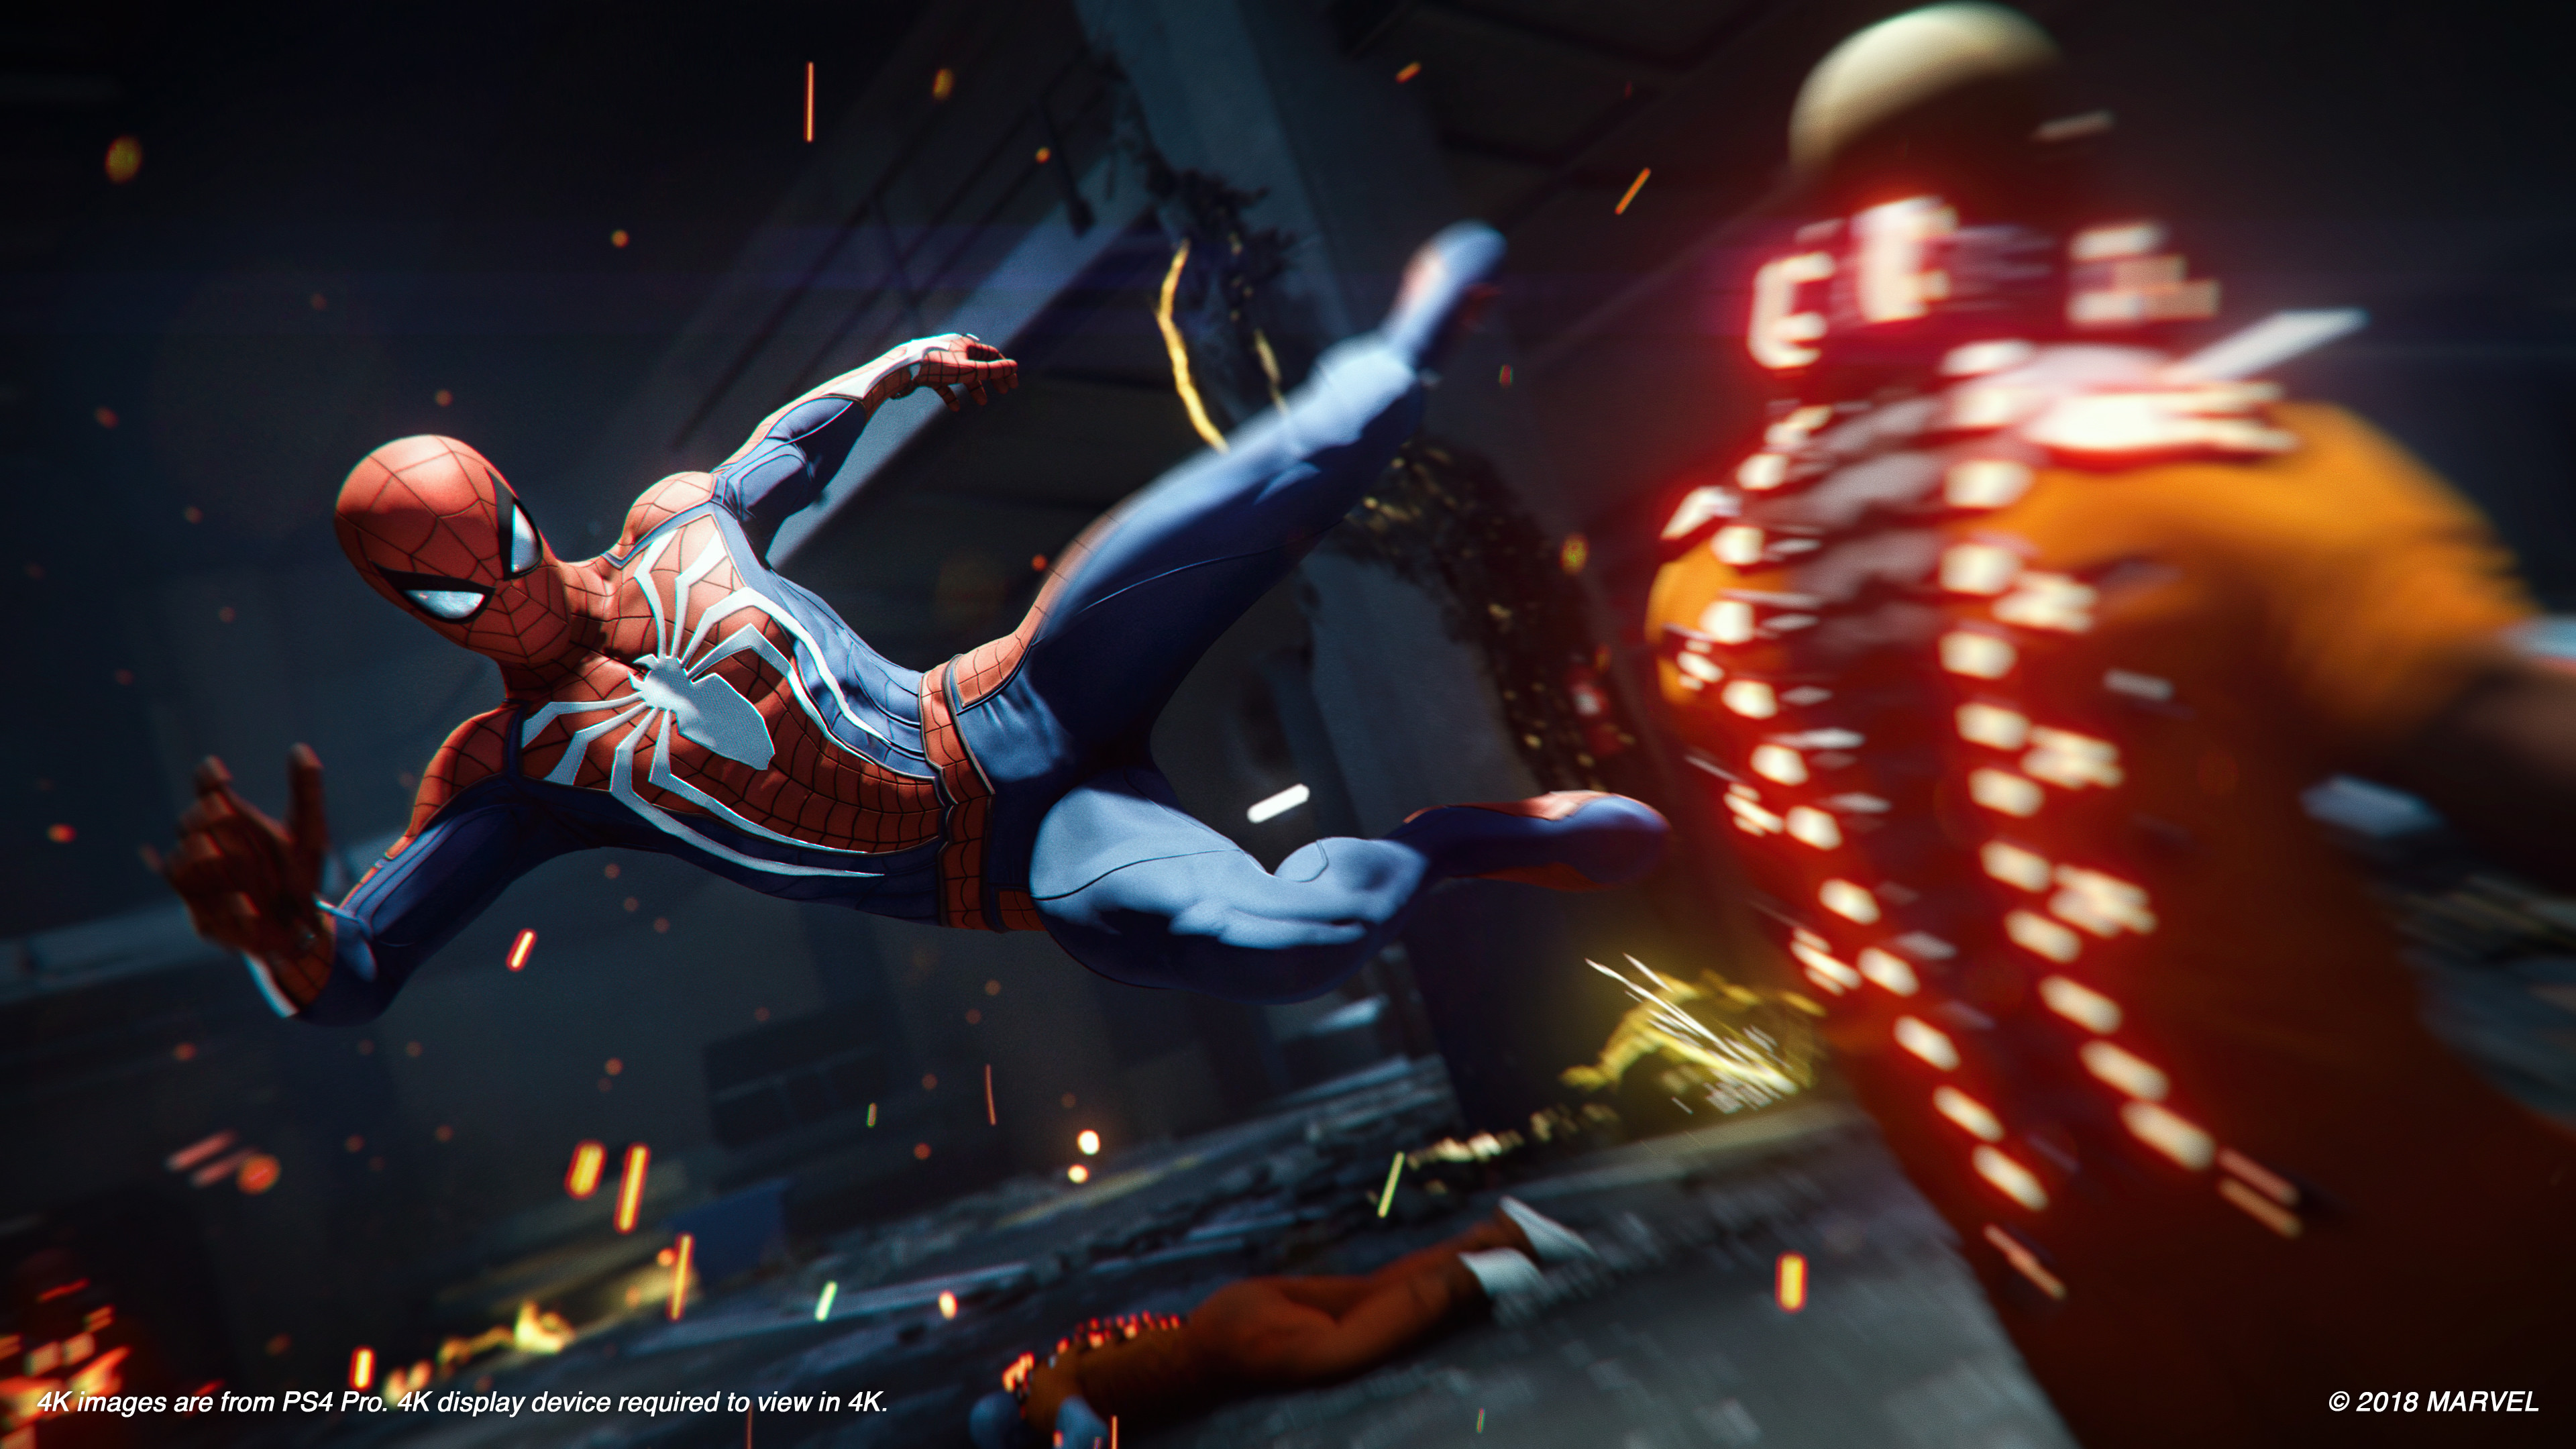 E3 2018: Spider-Man PS4 Trailer Hints at Sinister Six